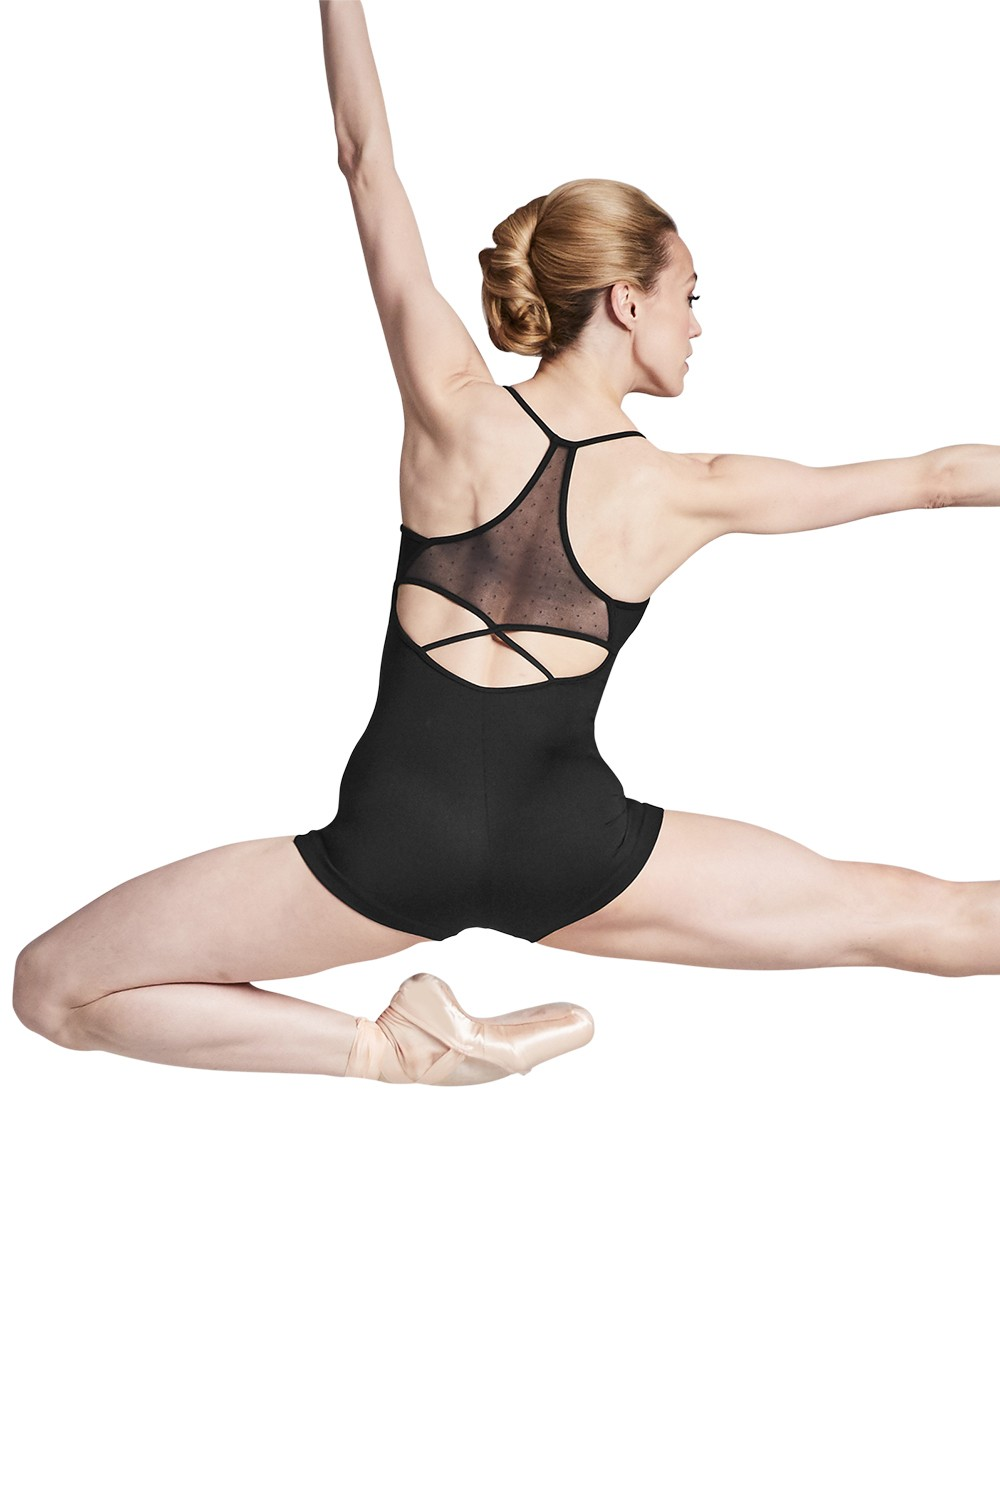 Pillar Women's Dance Leotards